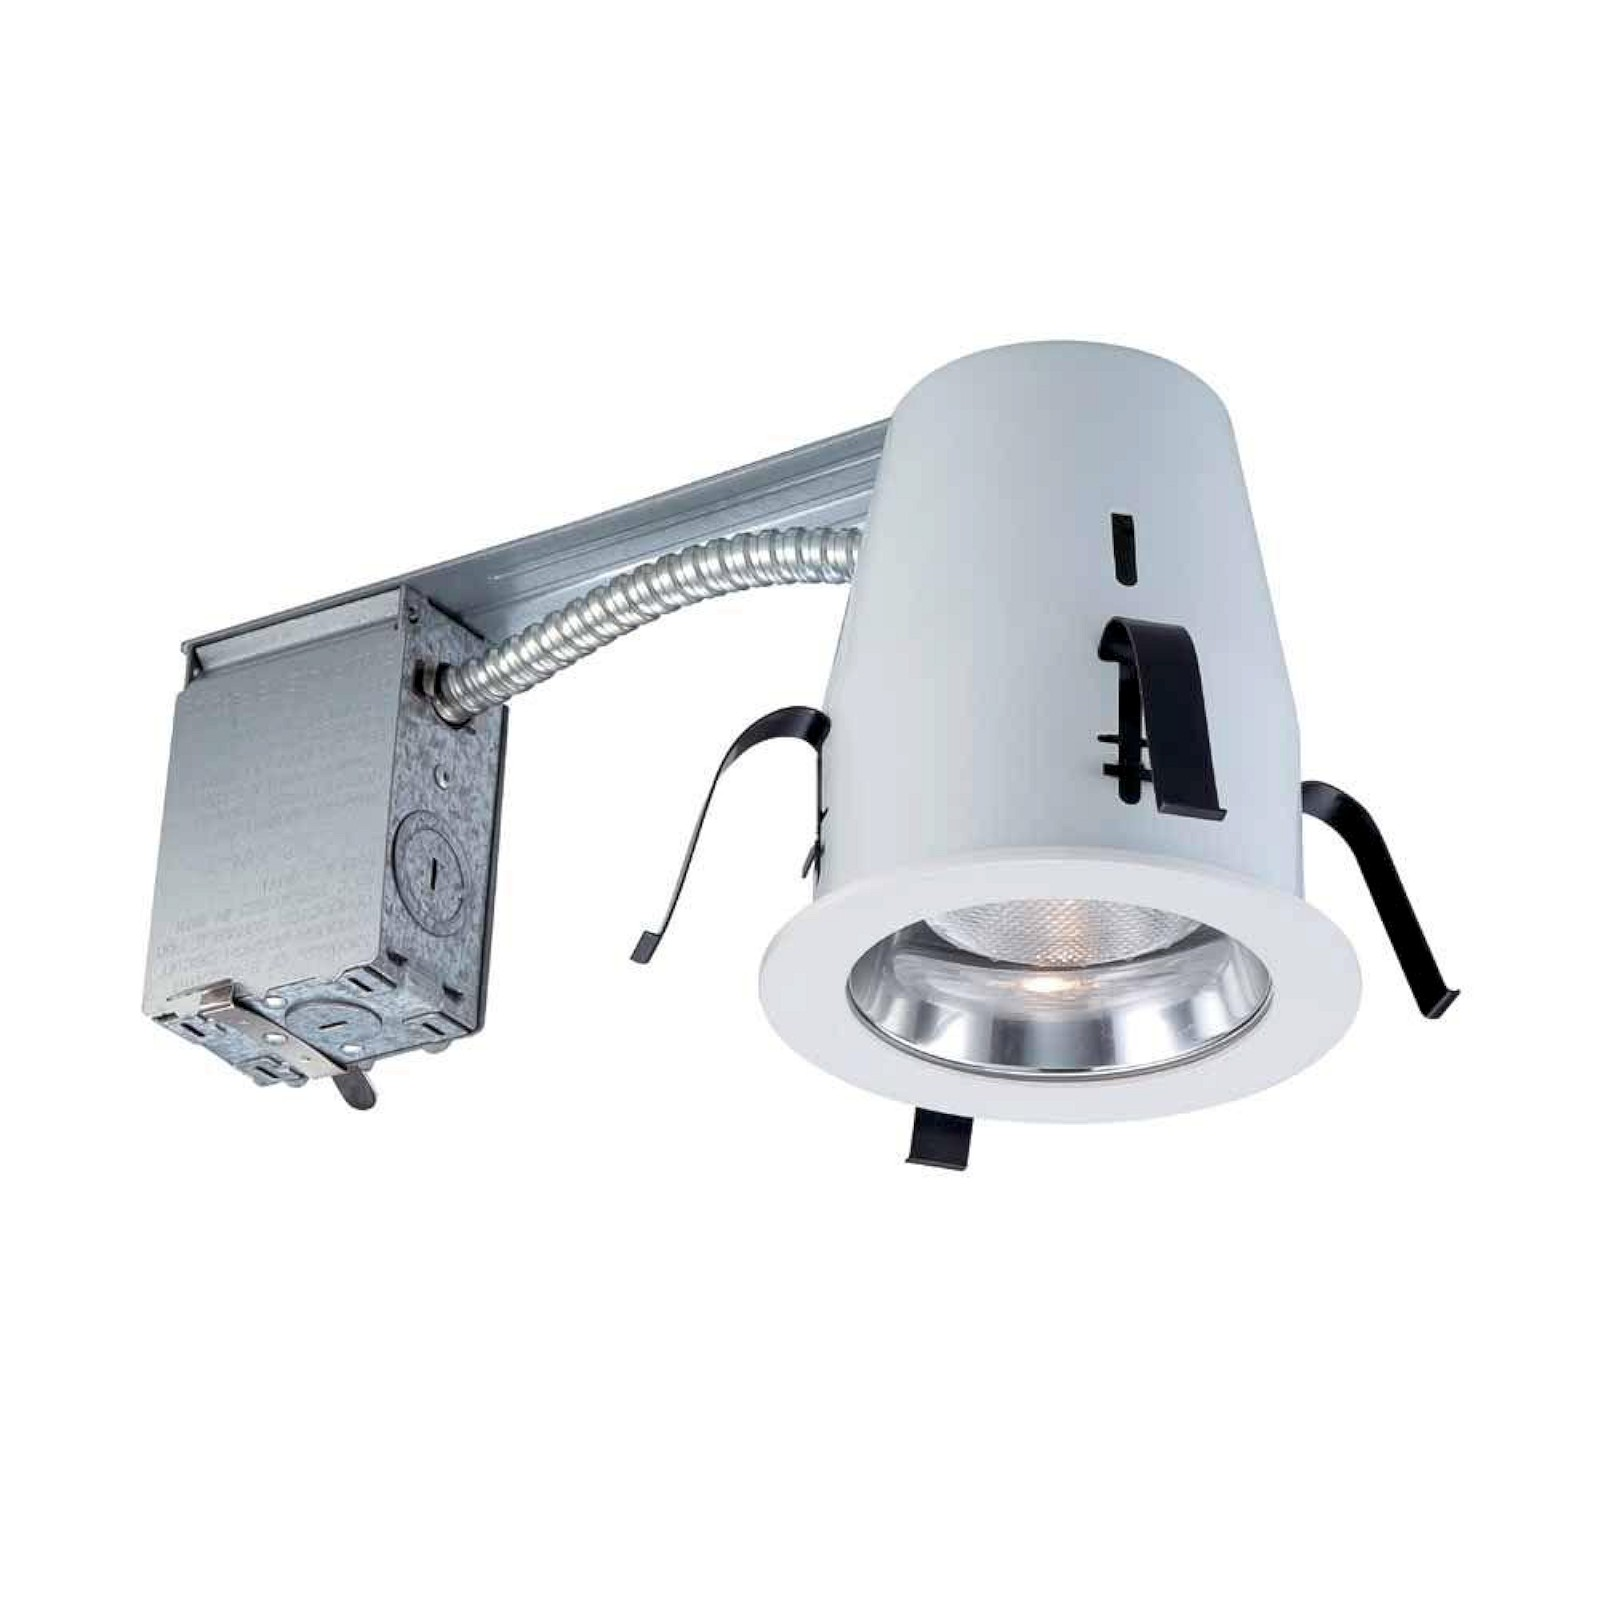 Details About Commercial Electric 4 In Chrome Non Ic Remodel Recessed Lighting Kit